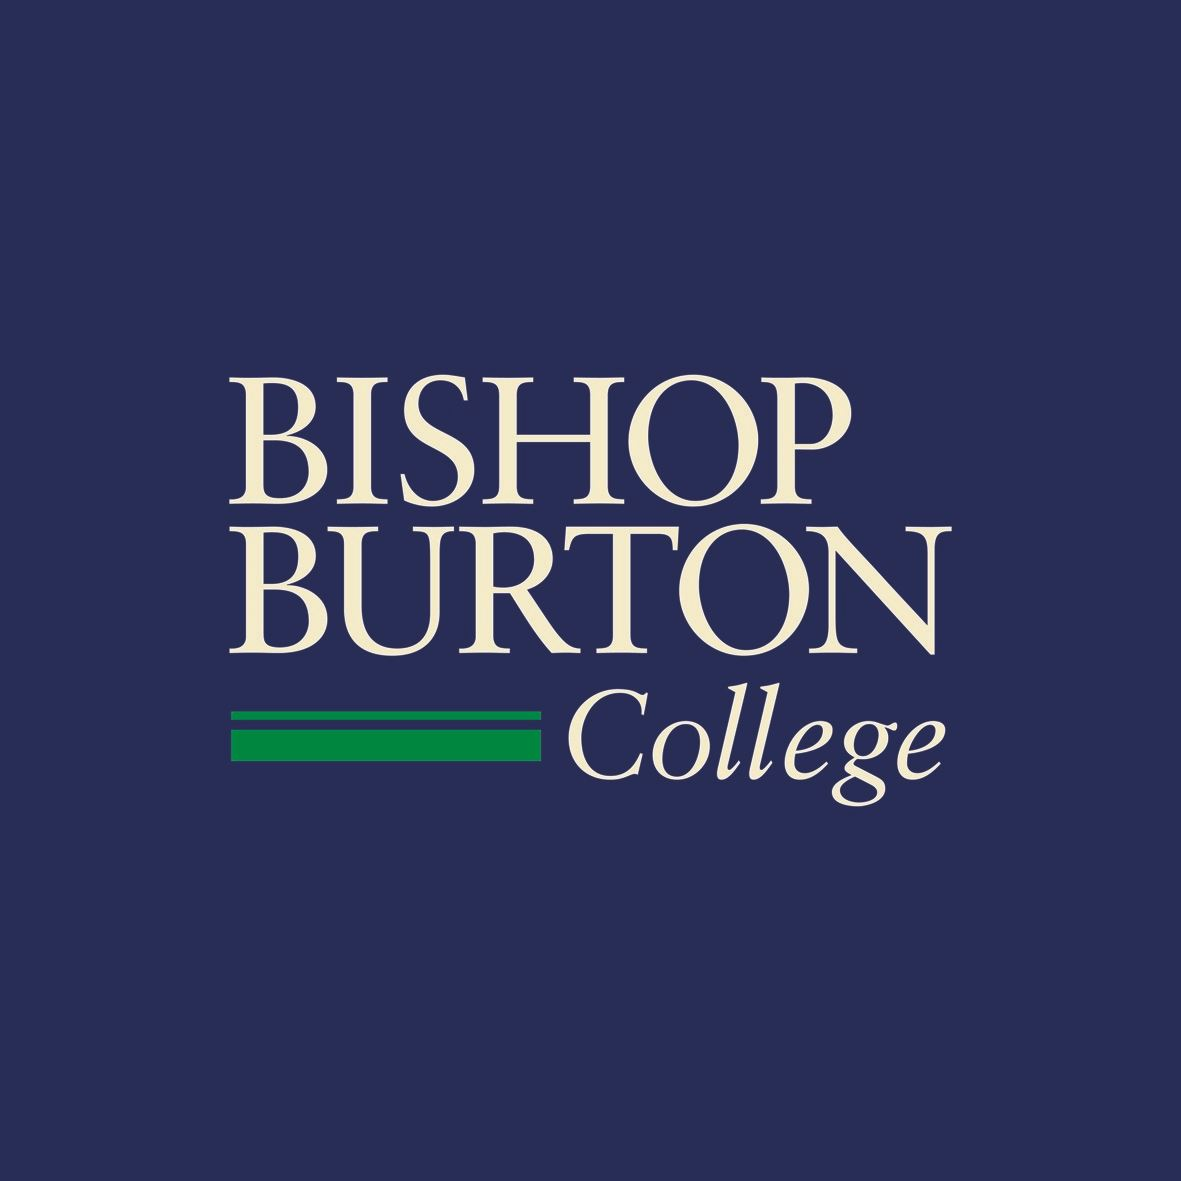 Bishop Burton College - Football